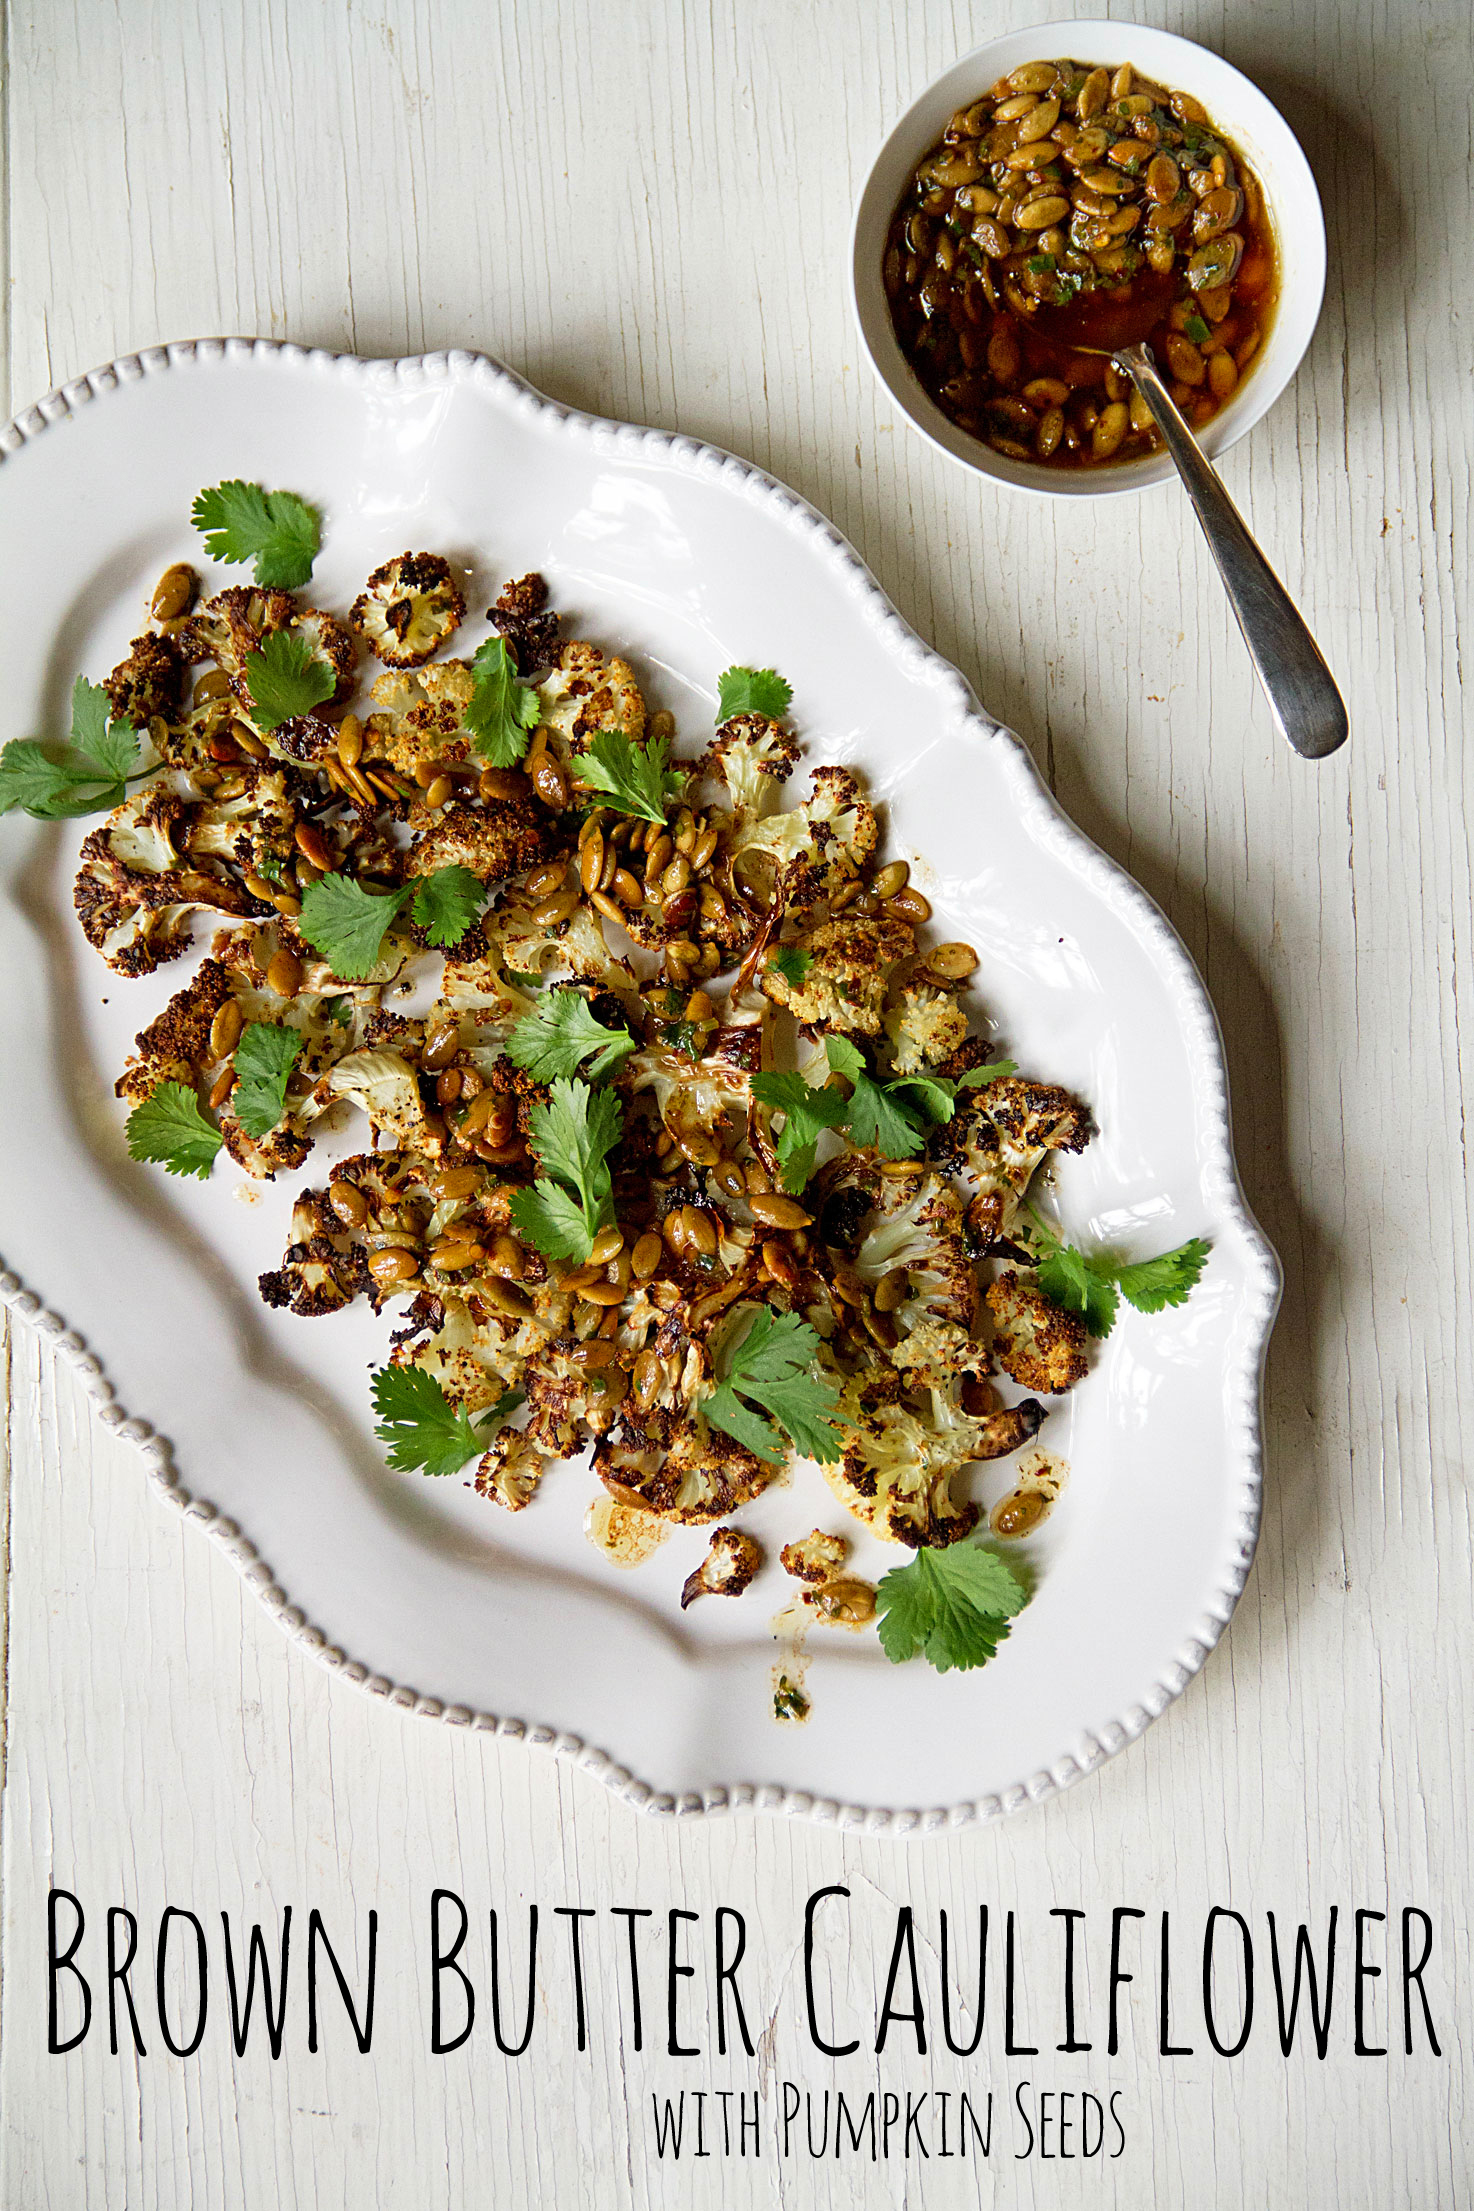 Brown Butter Cauliflower with Pumpkin Seeds